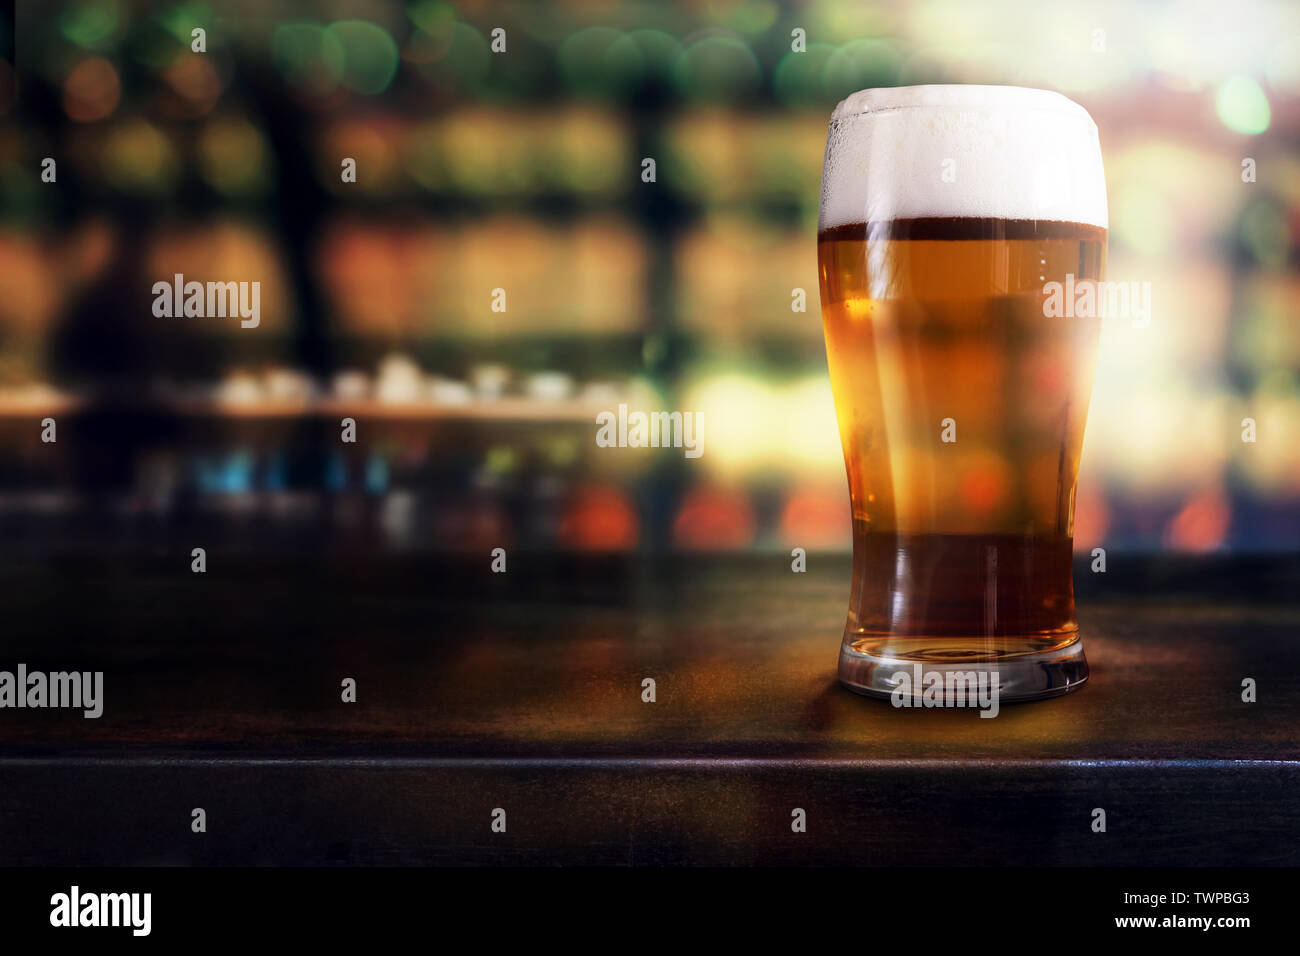 Glass of Beer on Table in Bar or Restaurant. Side View. Night Scene - Stock Image